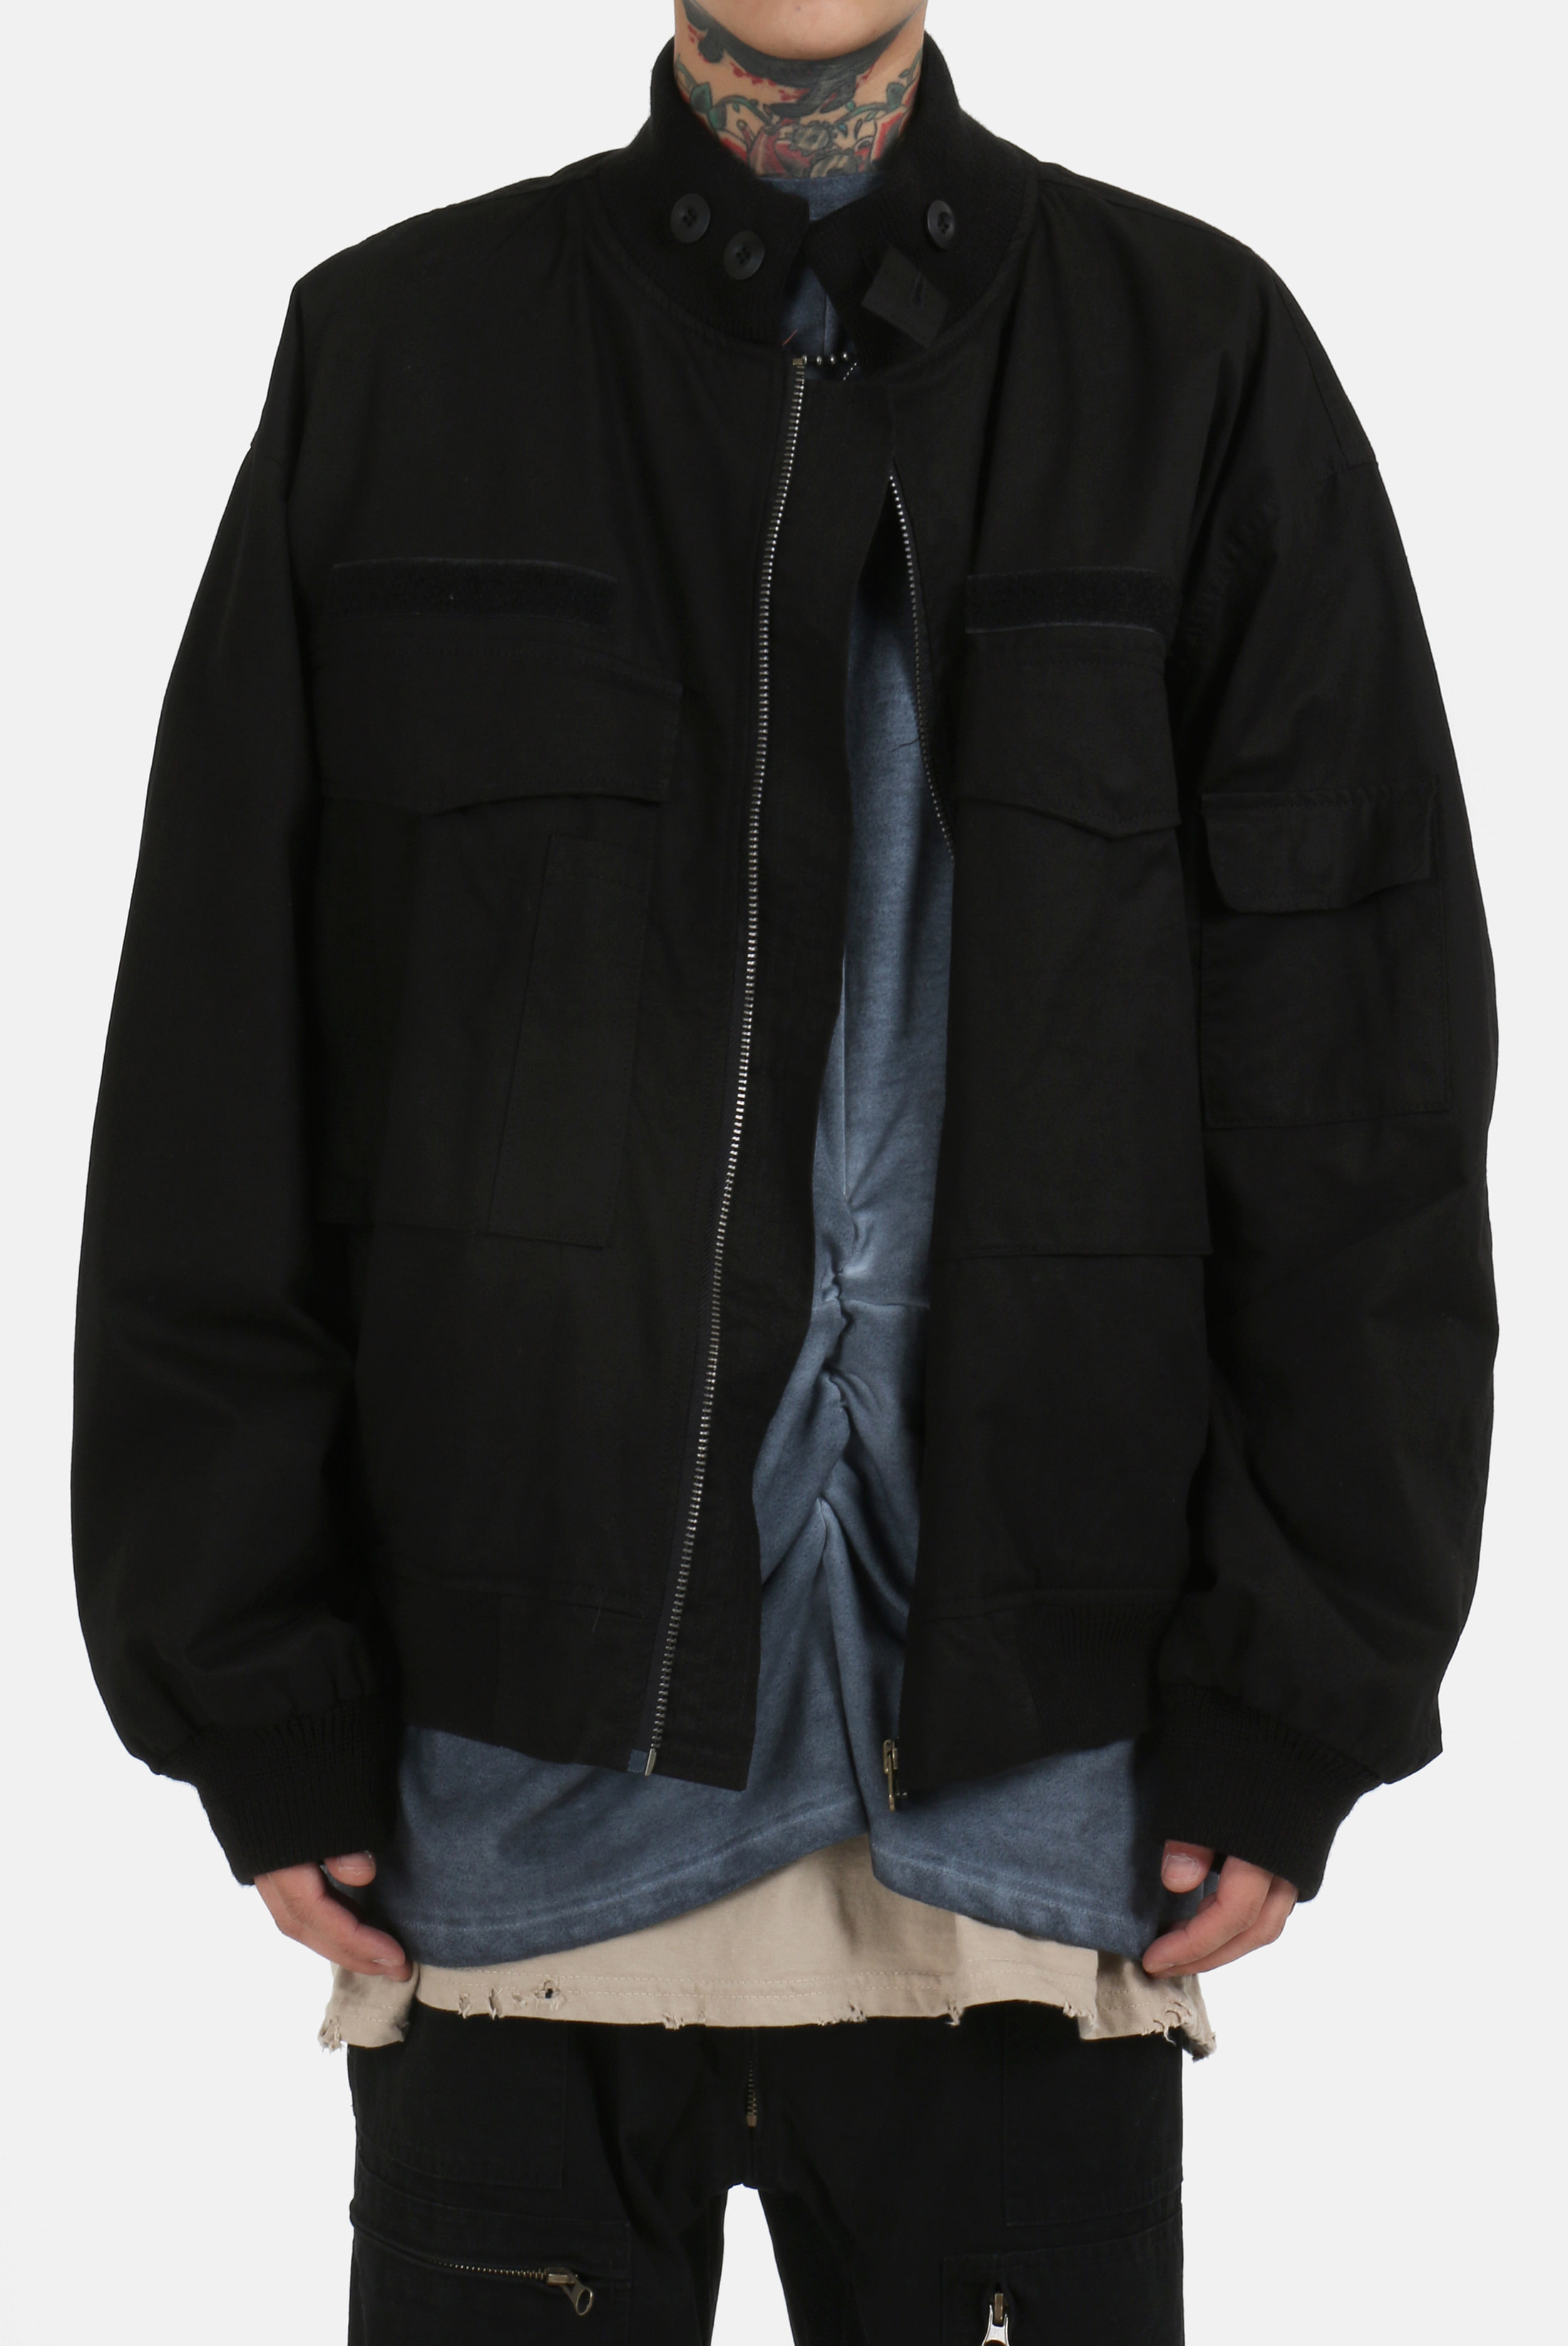 Over_Fit Hard_Rip Field Jacket